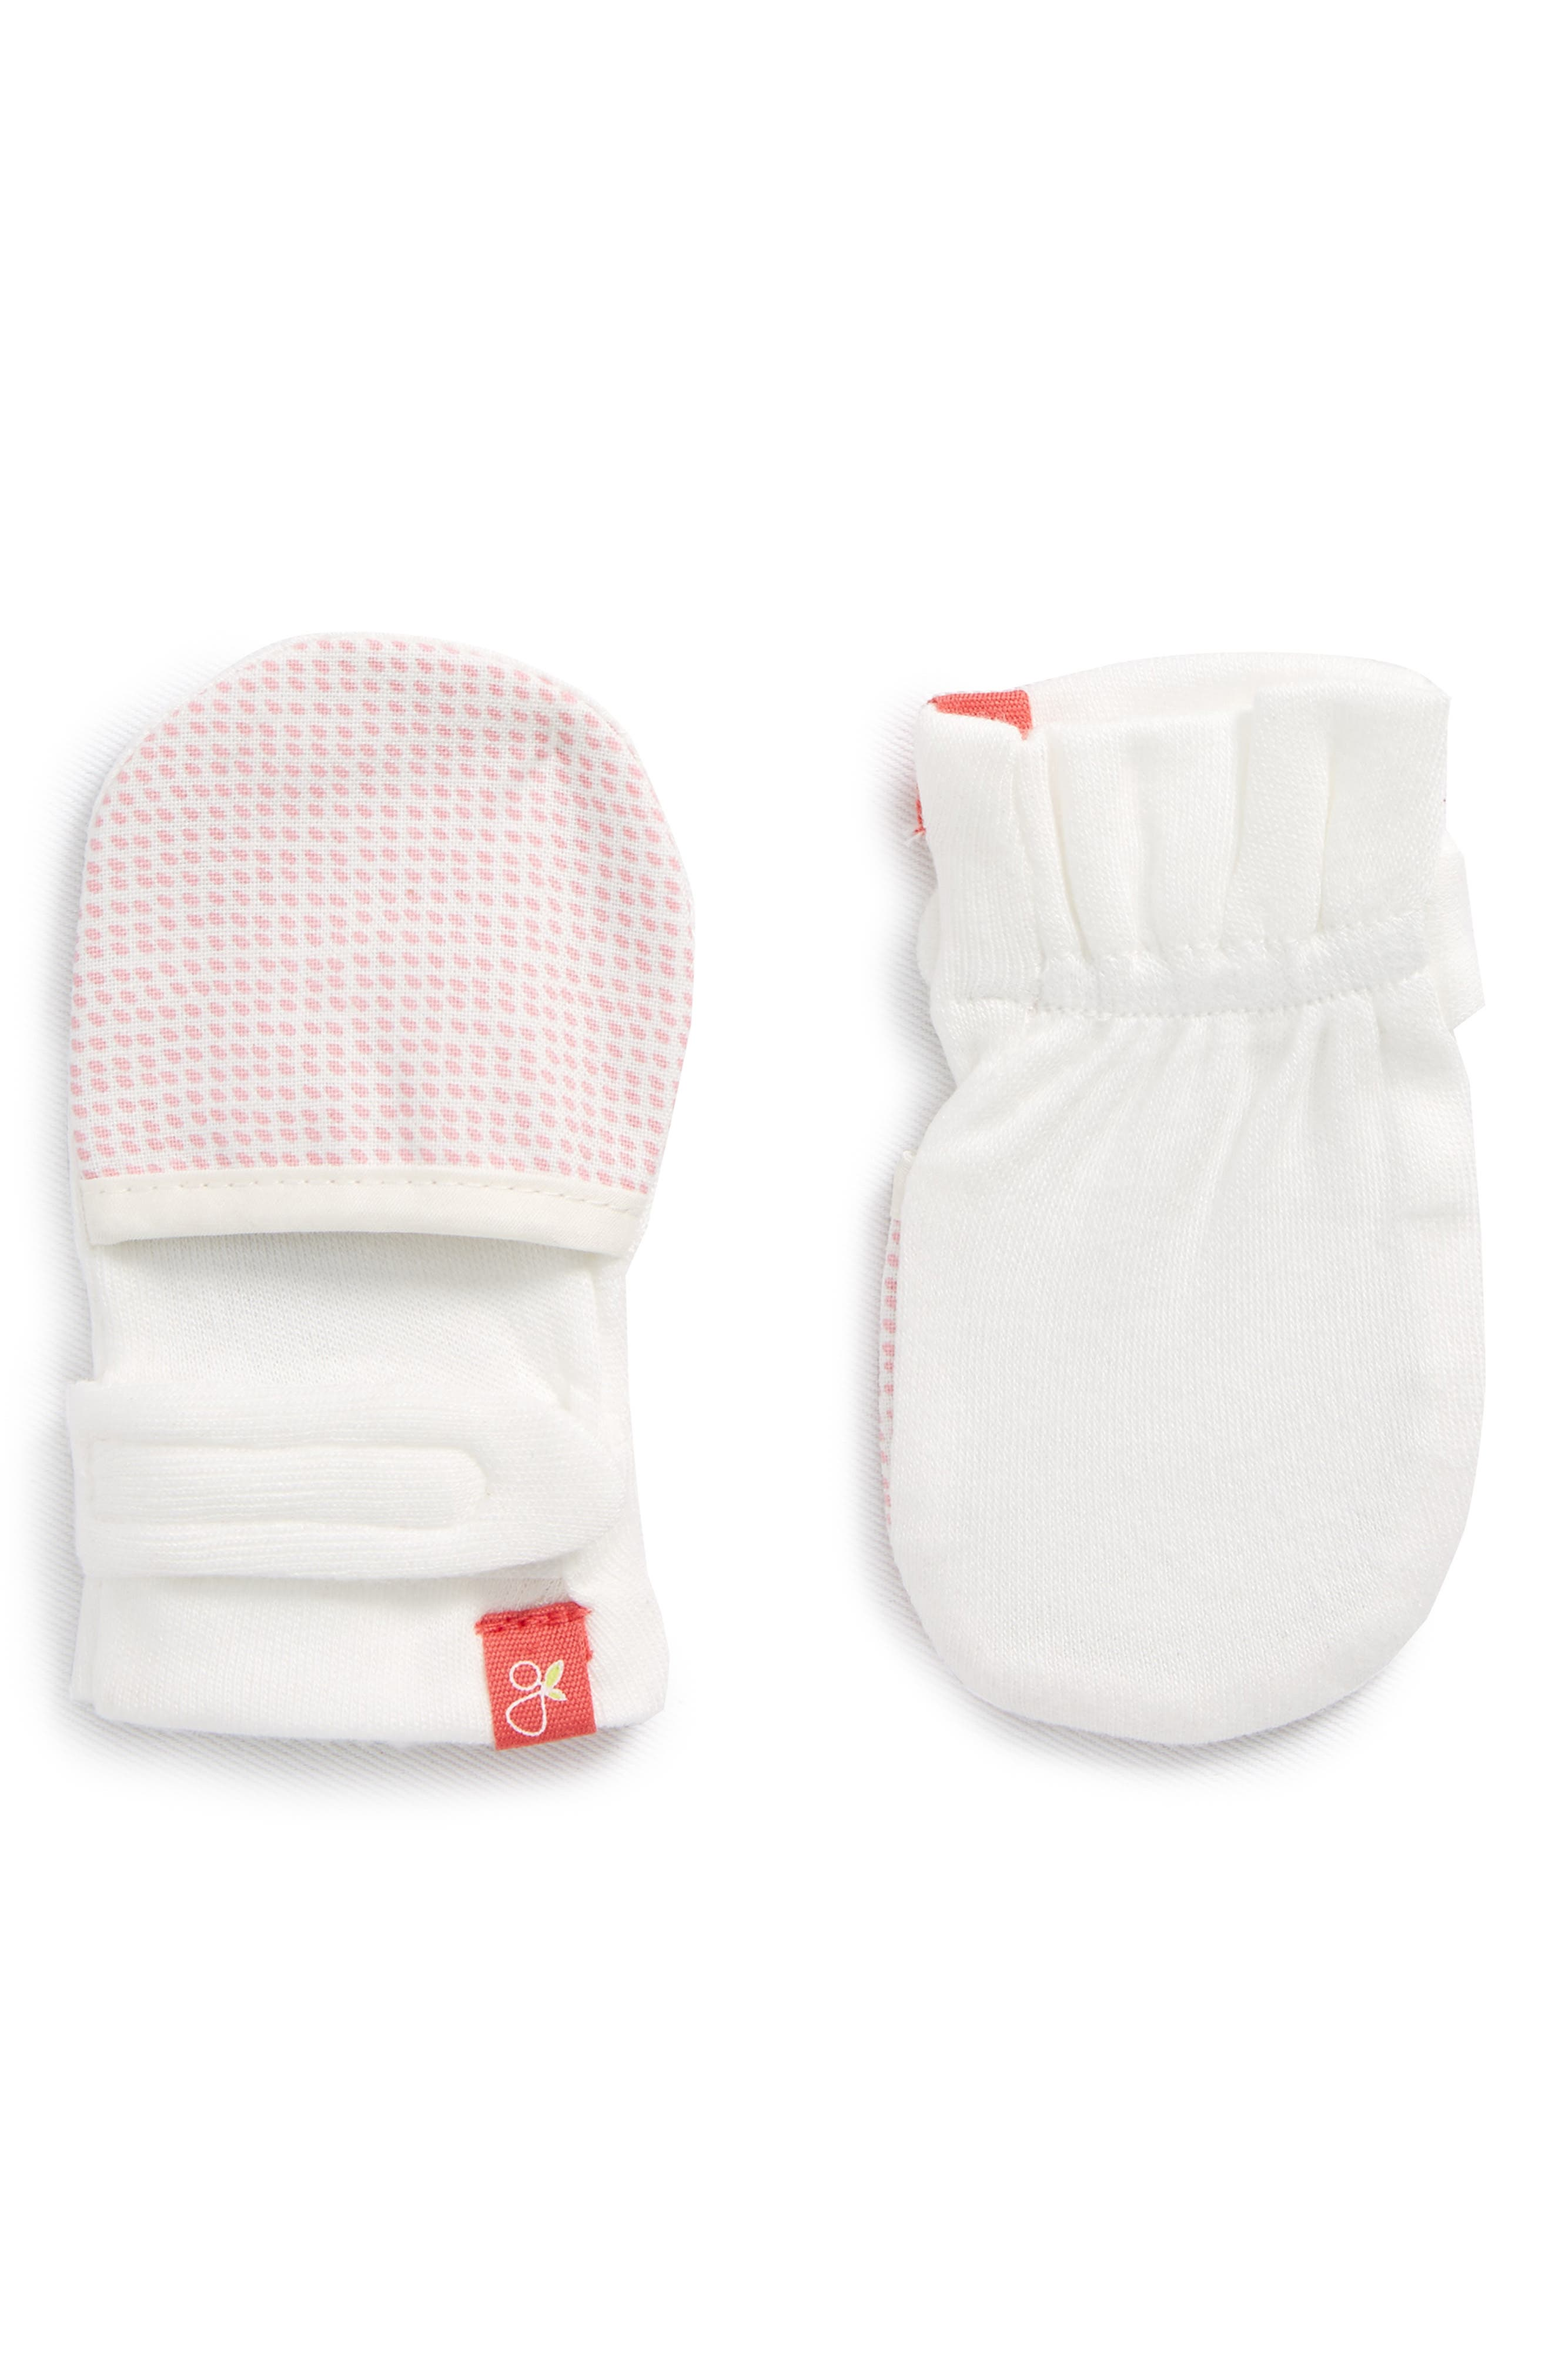 Infant Girls Goumikids Drops Mittens Size 03 M  Pink